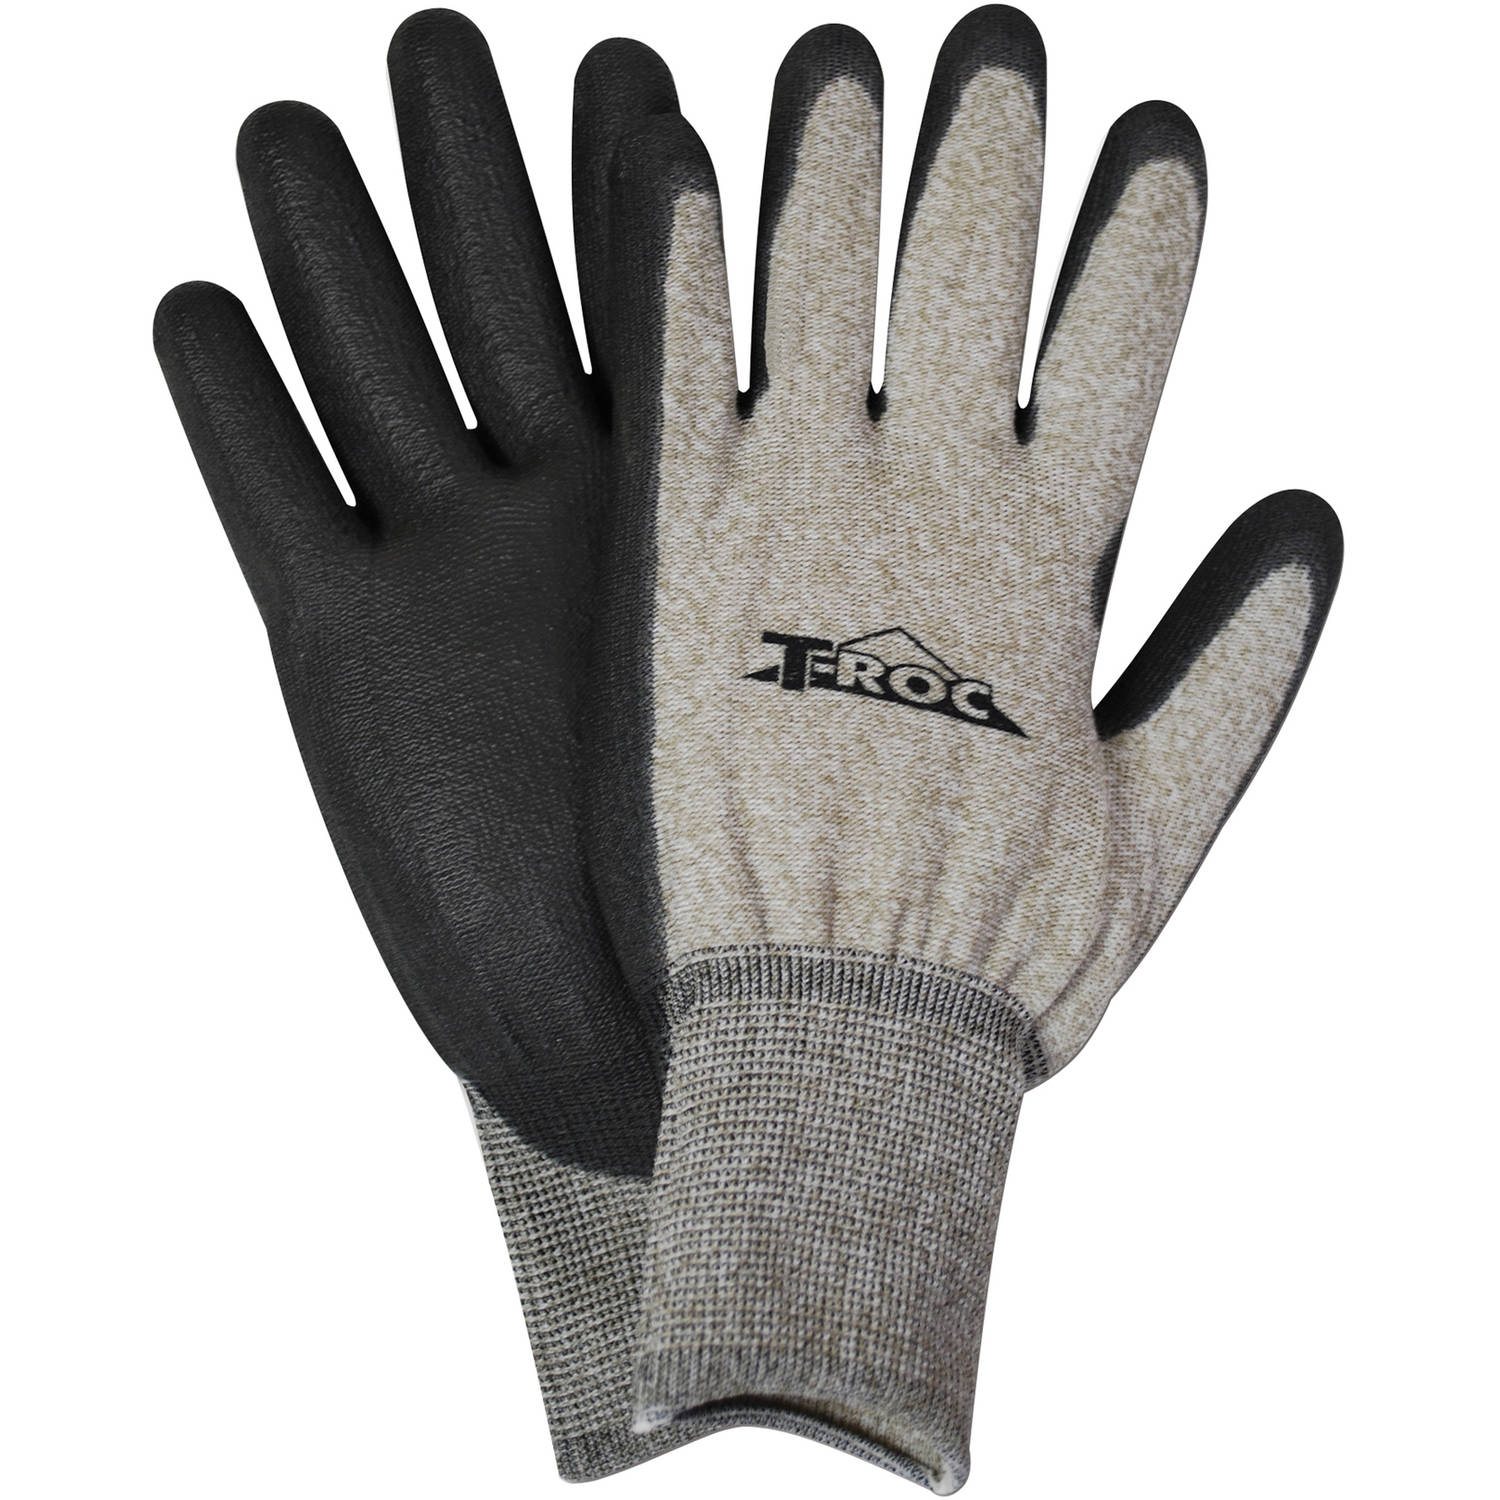 Magid Glove ROC5000TL Large ROC Touchscreen Gloves